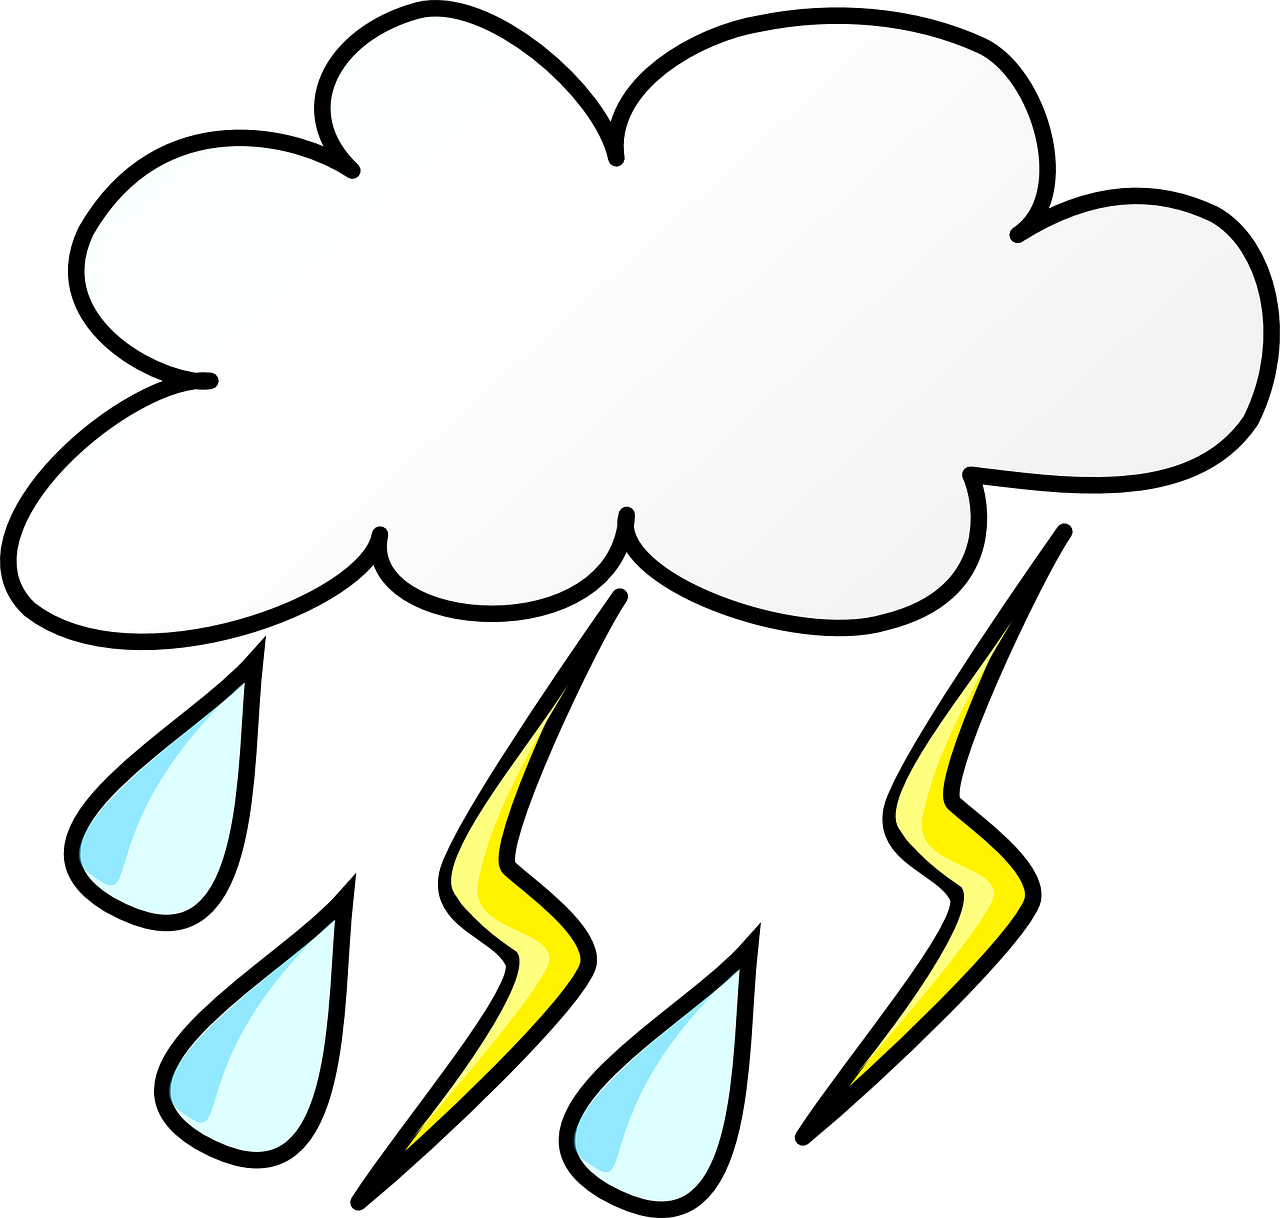 weather-26343_1280-2.png